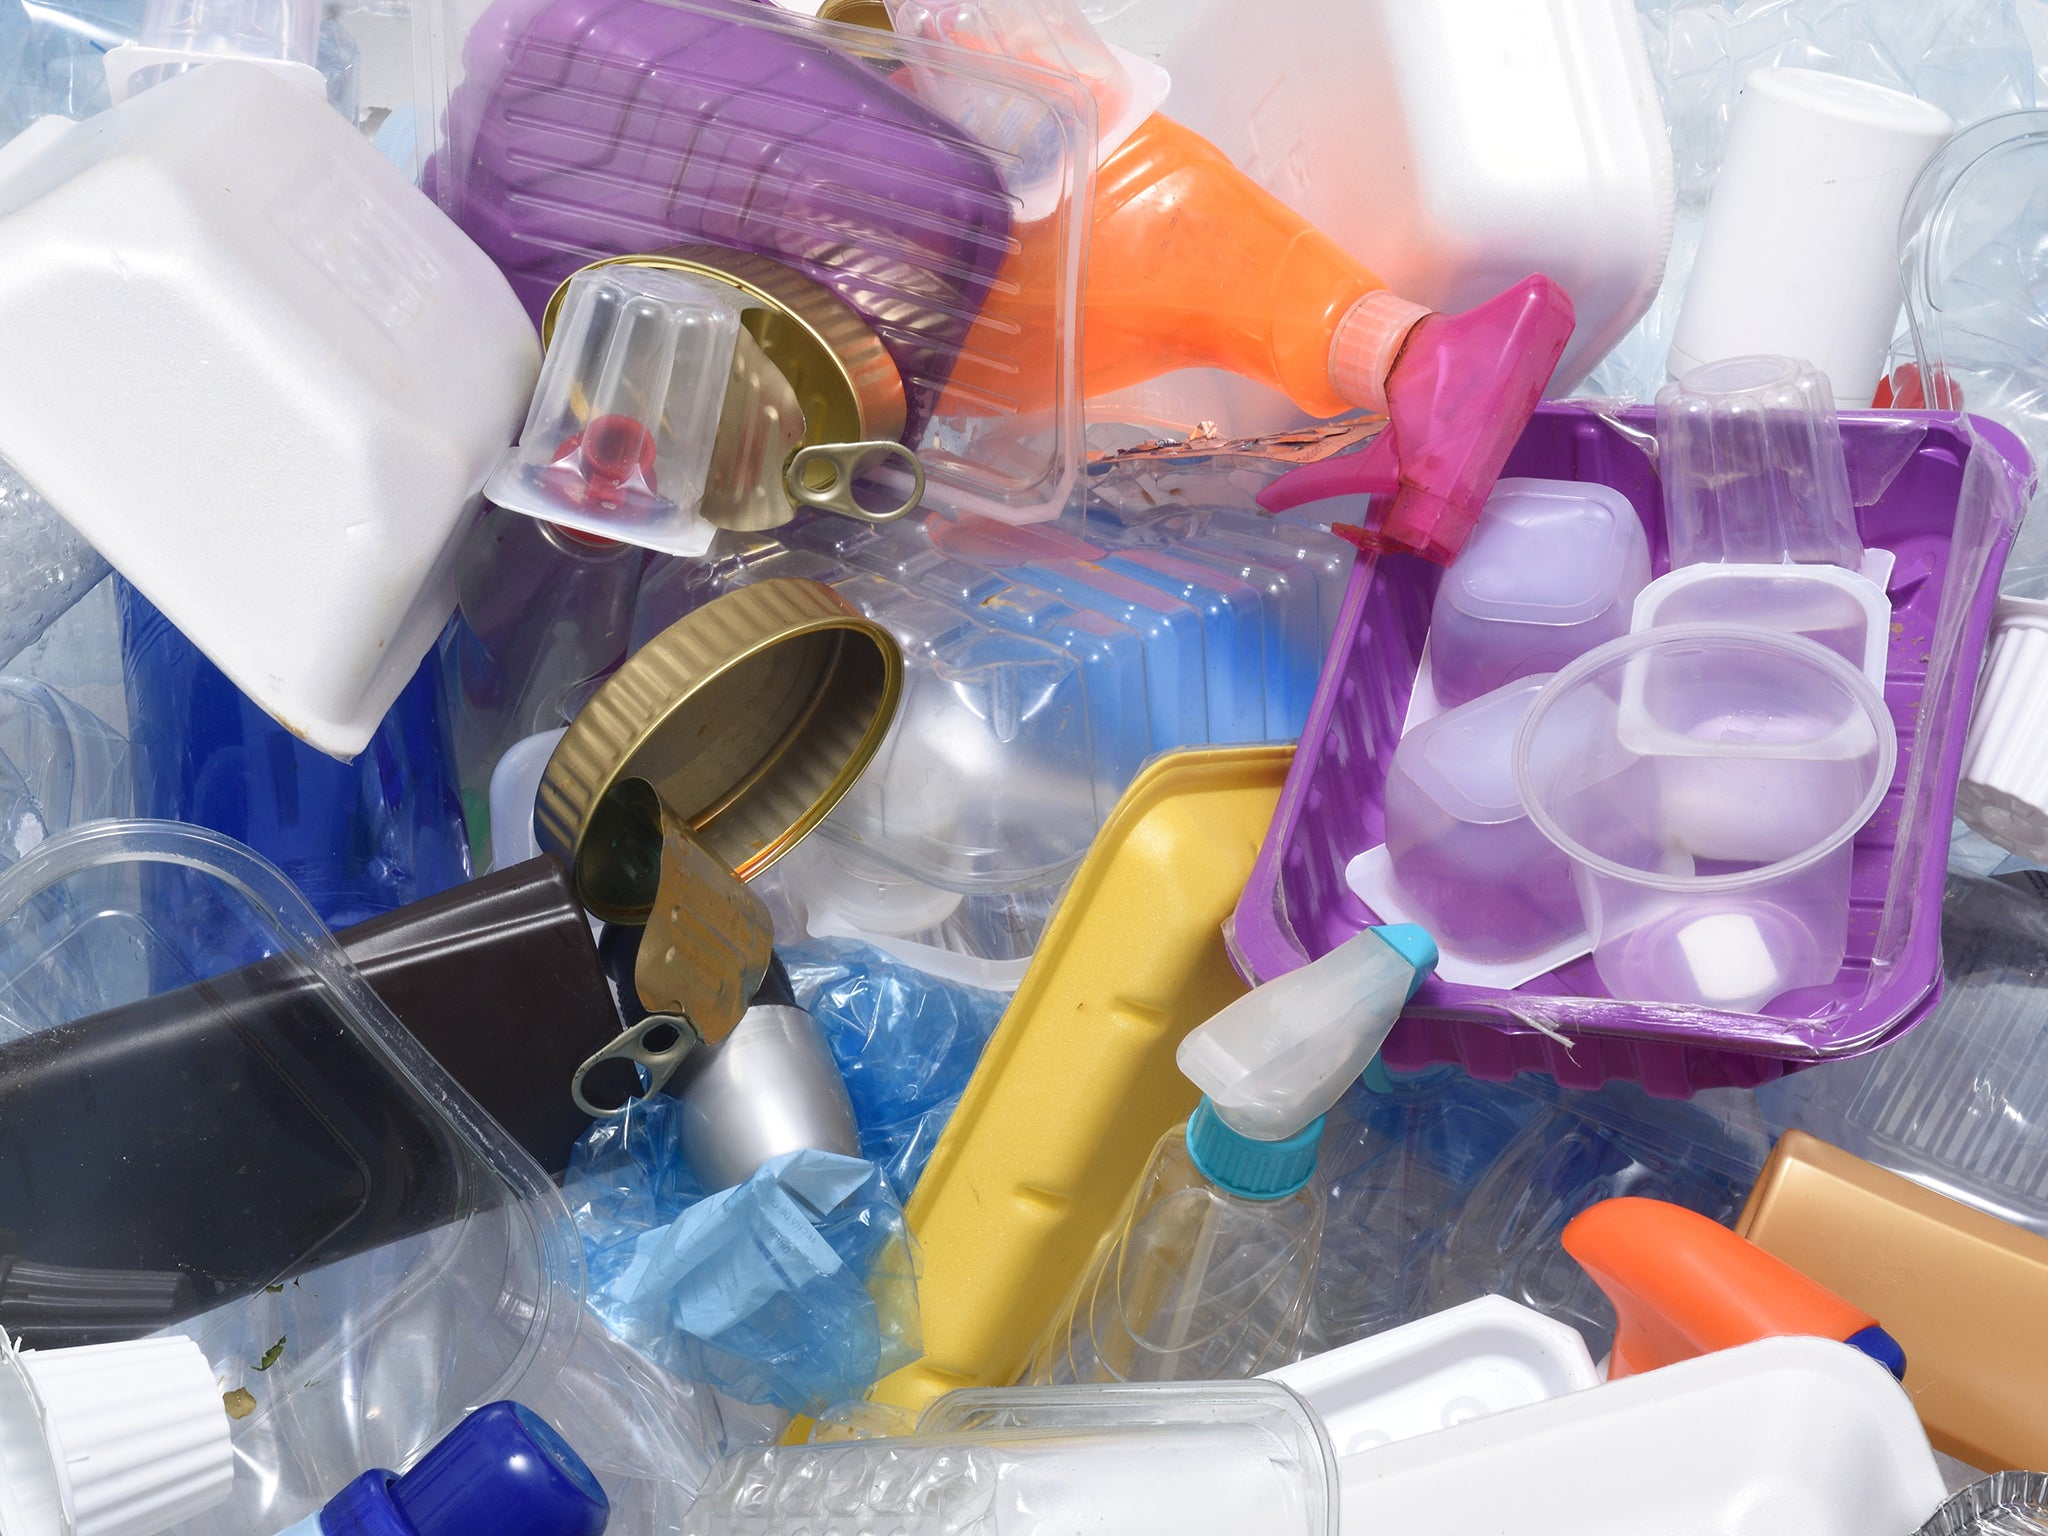 Only one third of UK's plastic food packaging is recycled ...